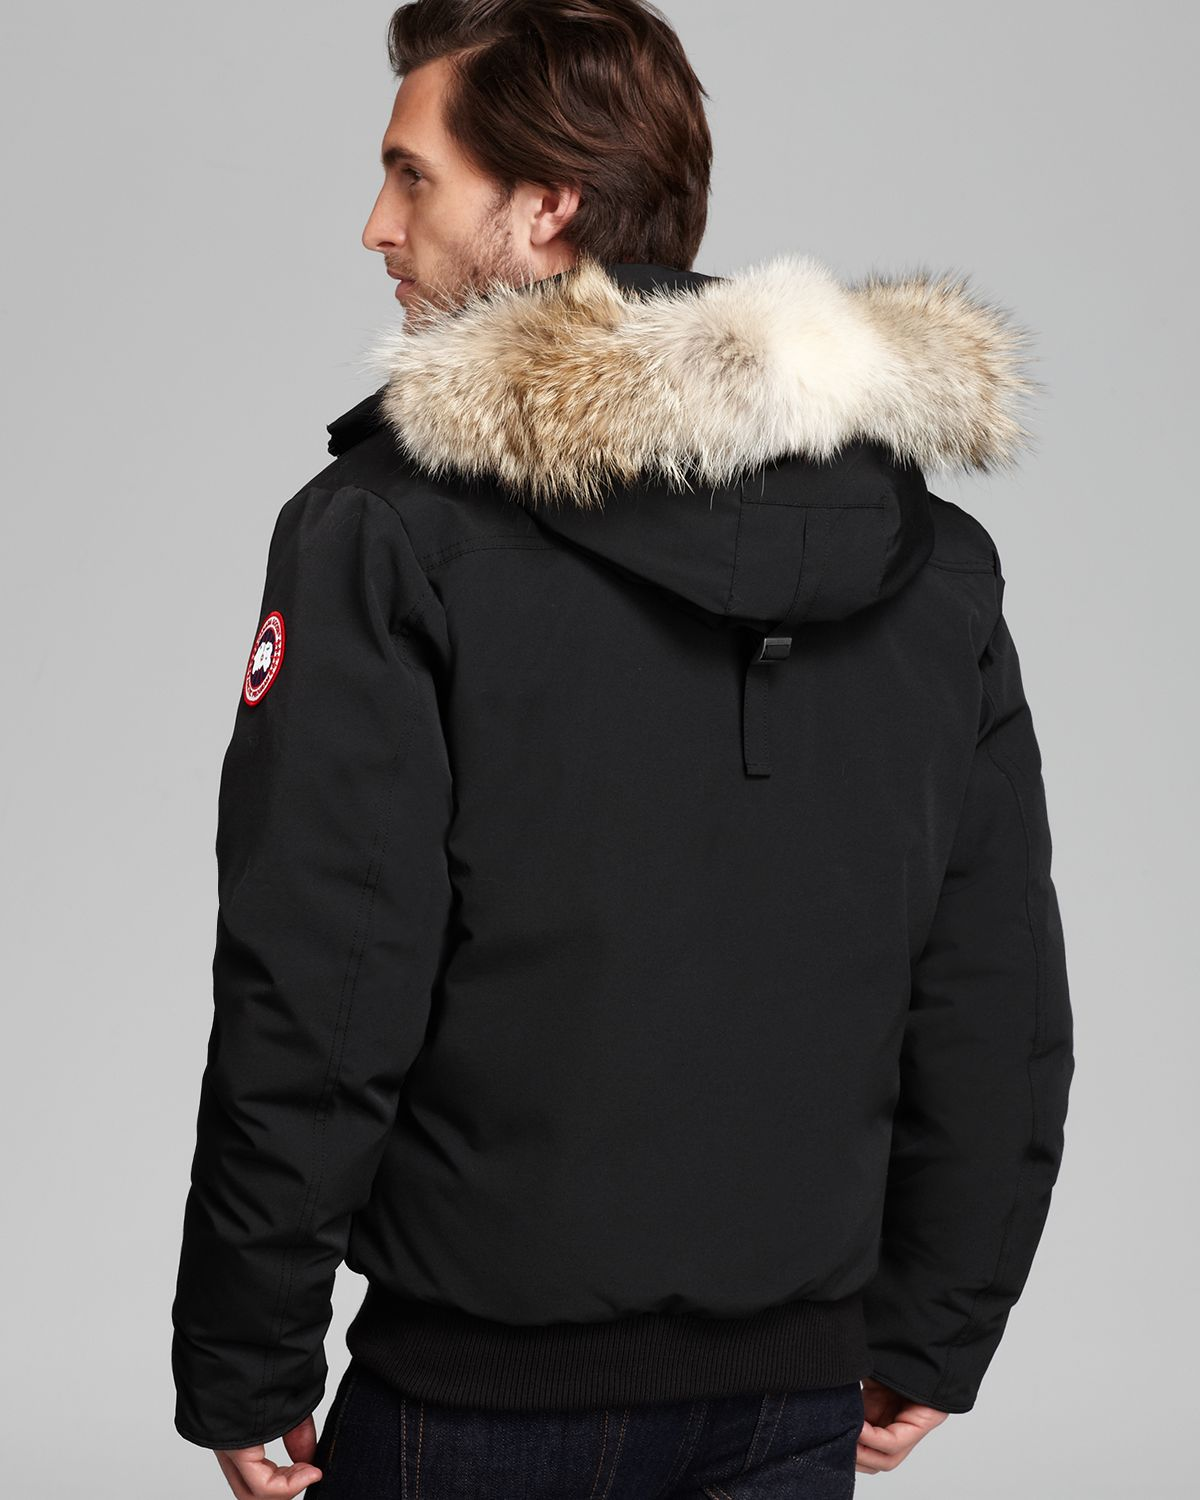 237729c14f0 ... inexpensive lyst canada goose borden bomber parka with fur hood in black  for men 42d05 a76a9